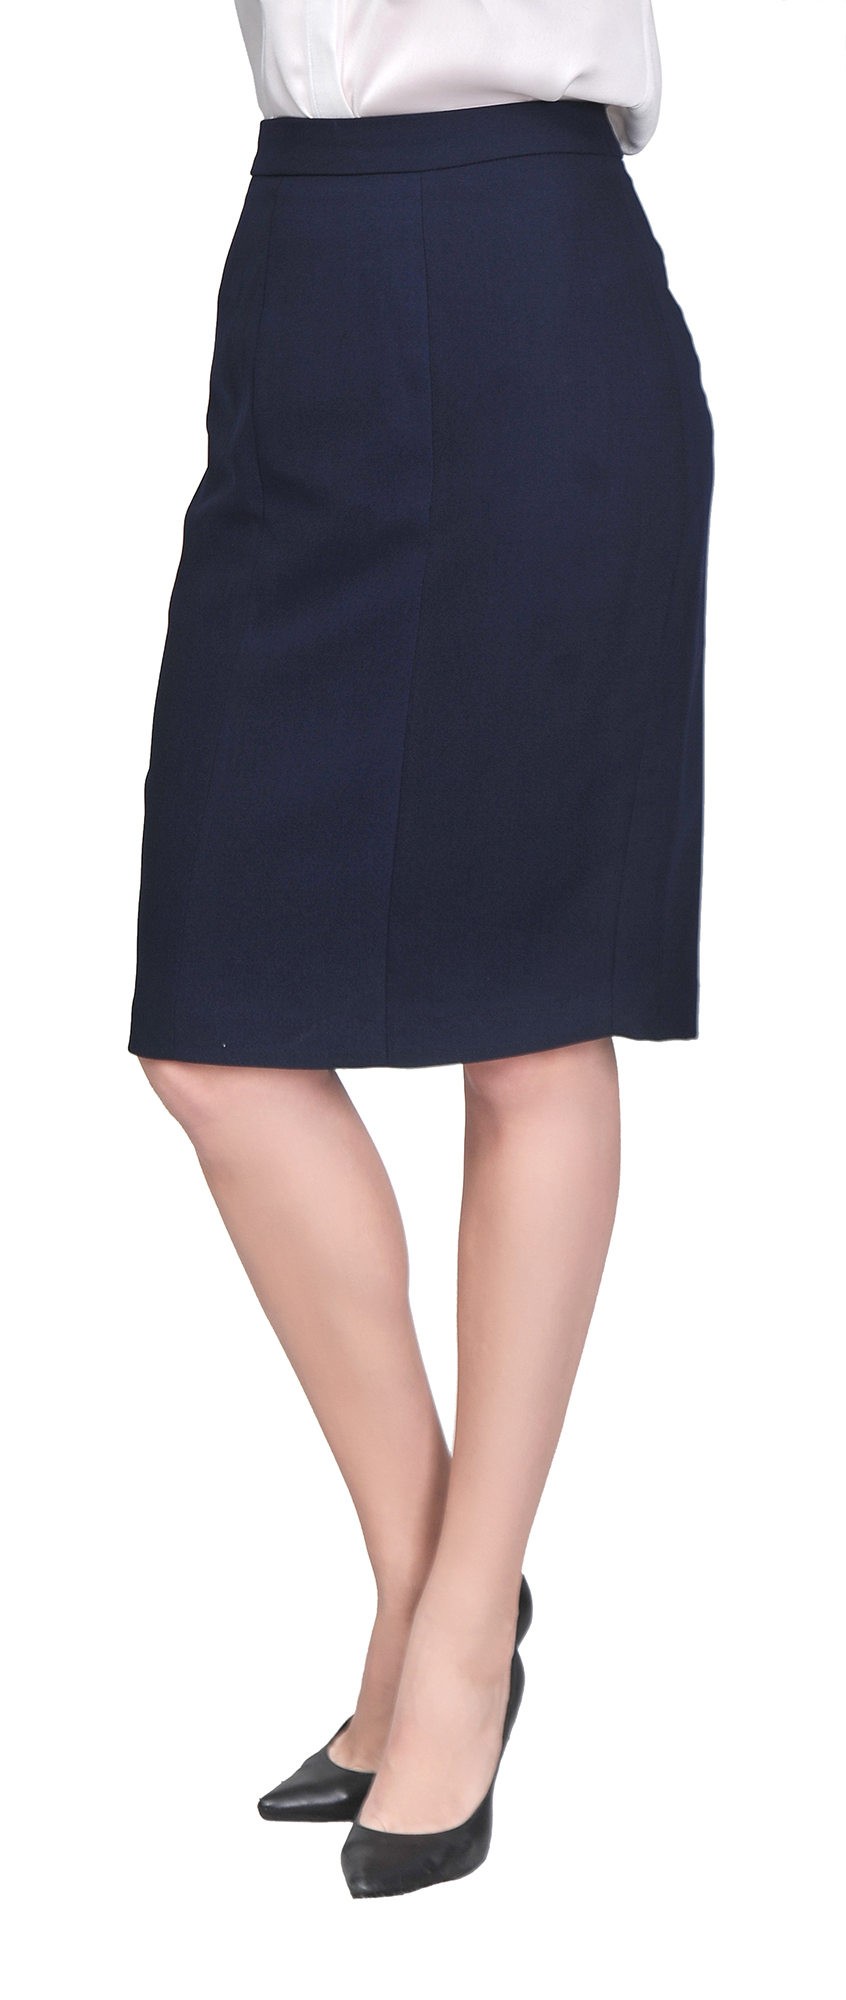 nice shoes official supplier shop best sellers Details about MARYCRAFTS WOMEN'S LINED PENCIL SKIRT WORK BUSINESS OFFICE  KNEE LENGTH SKIRTS